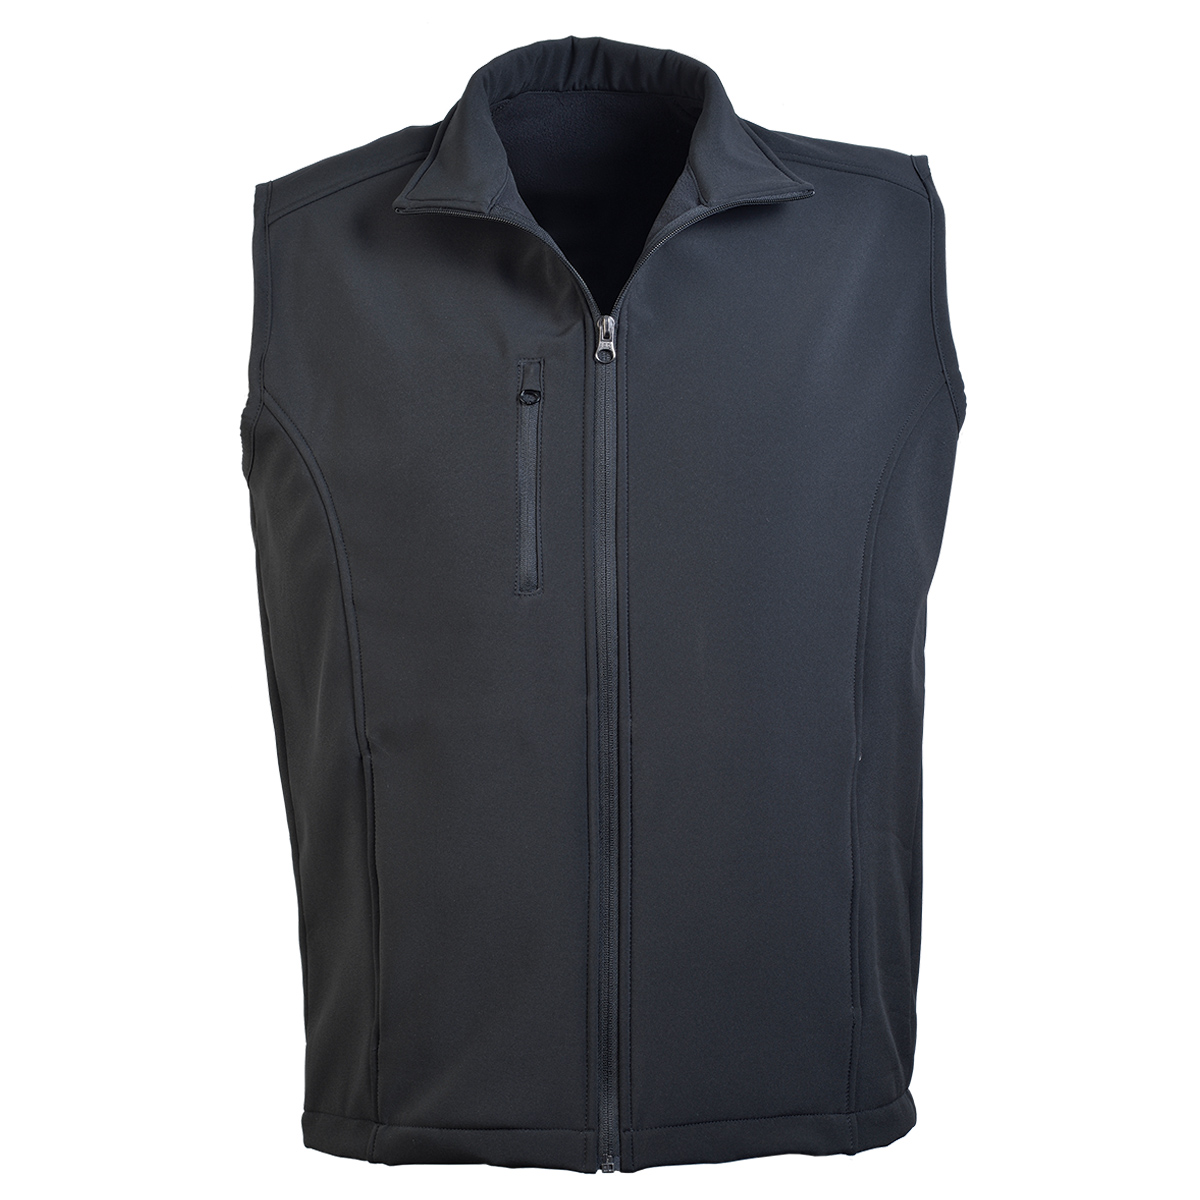 GSCC The Softshell Vest